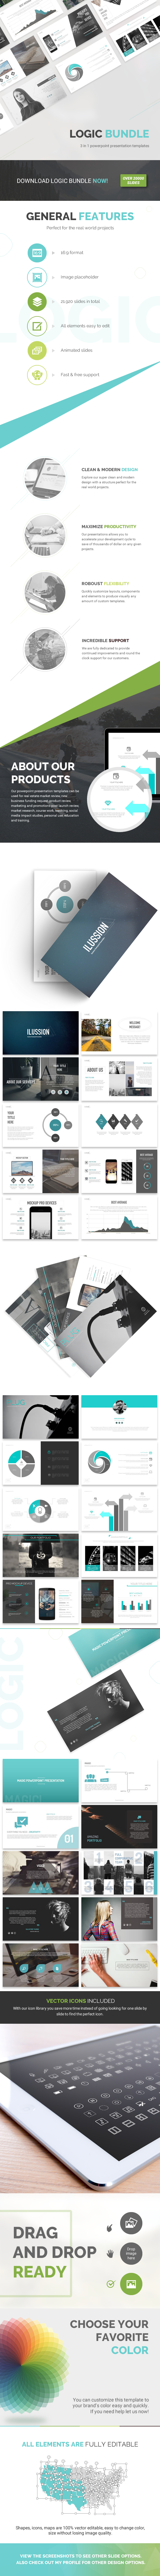 2015 Calendar PowerPoint Template (Powerpoint Templates)